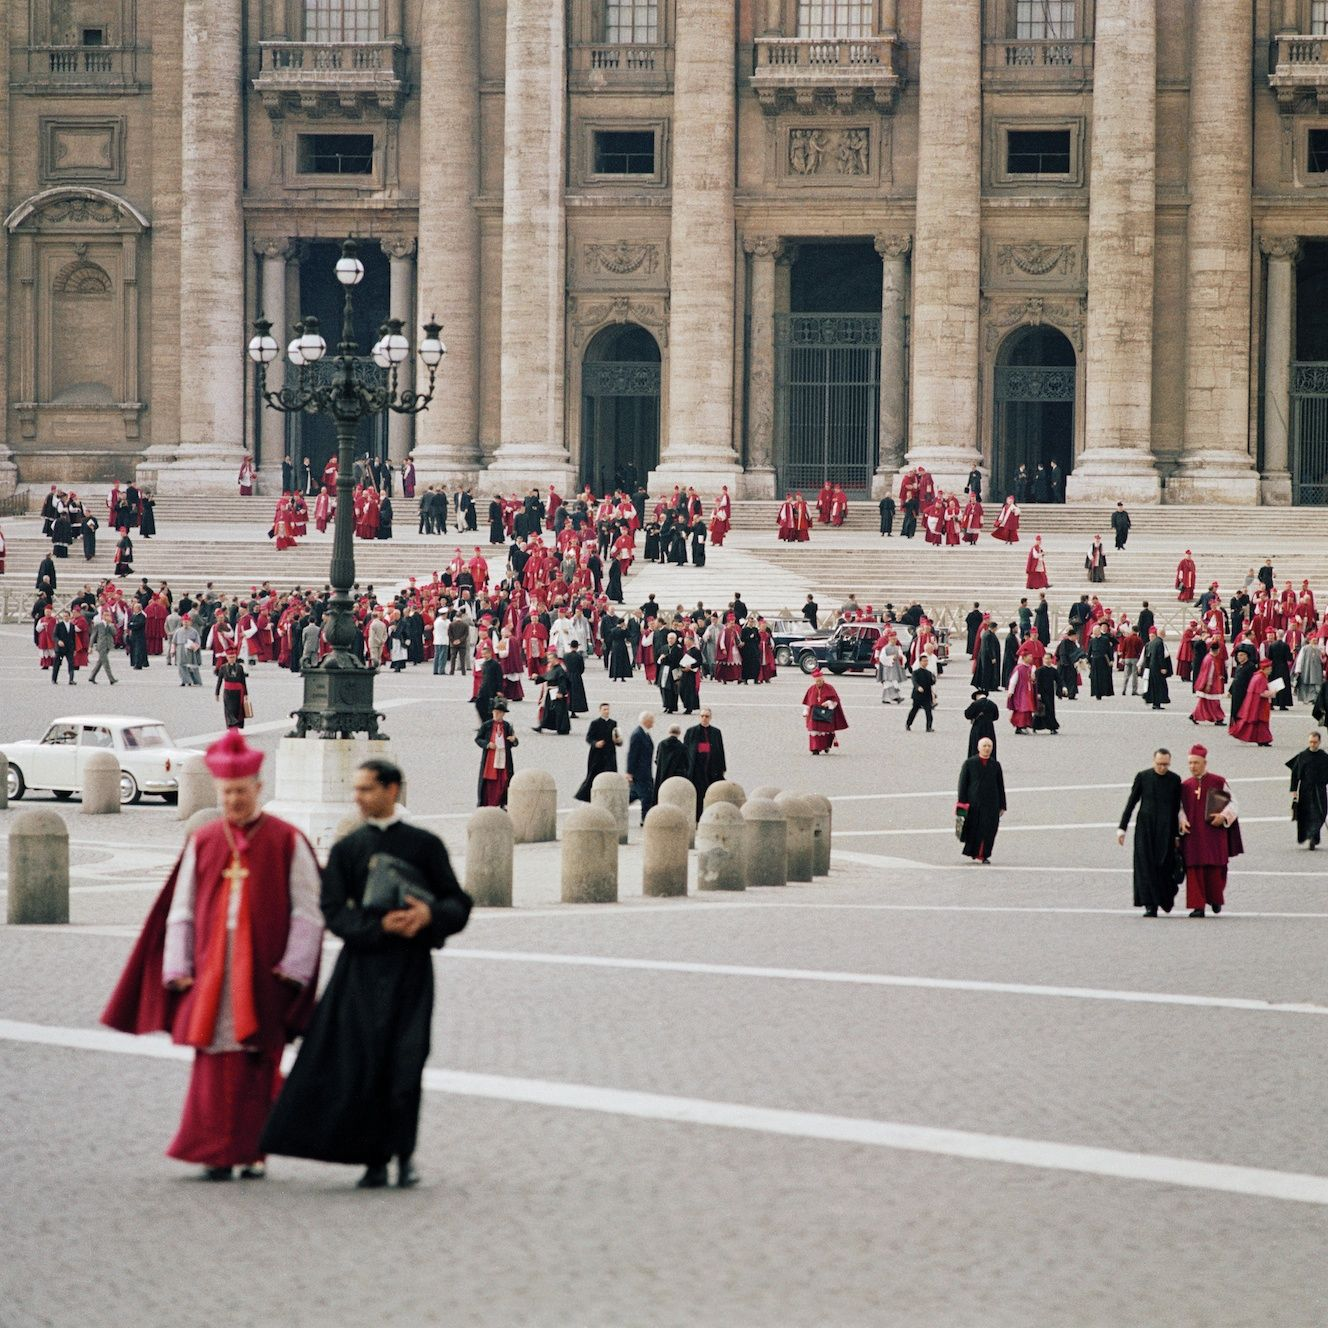 Second Vatican Council. Leaving St. Peter's Basilica (1963) by Lothar Wolleh